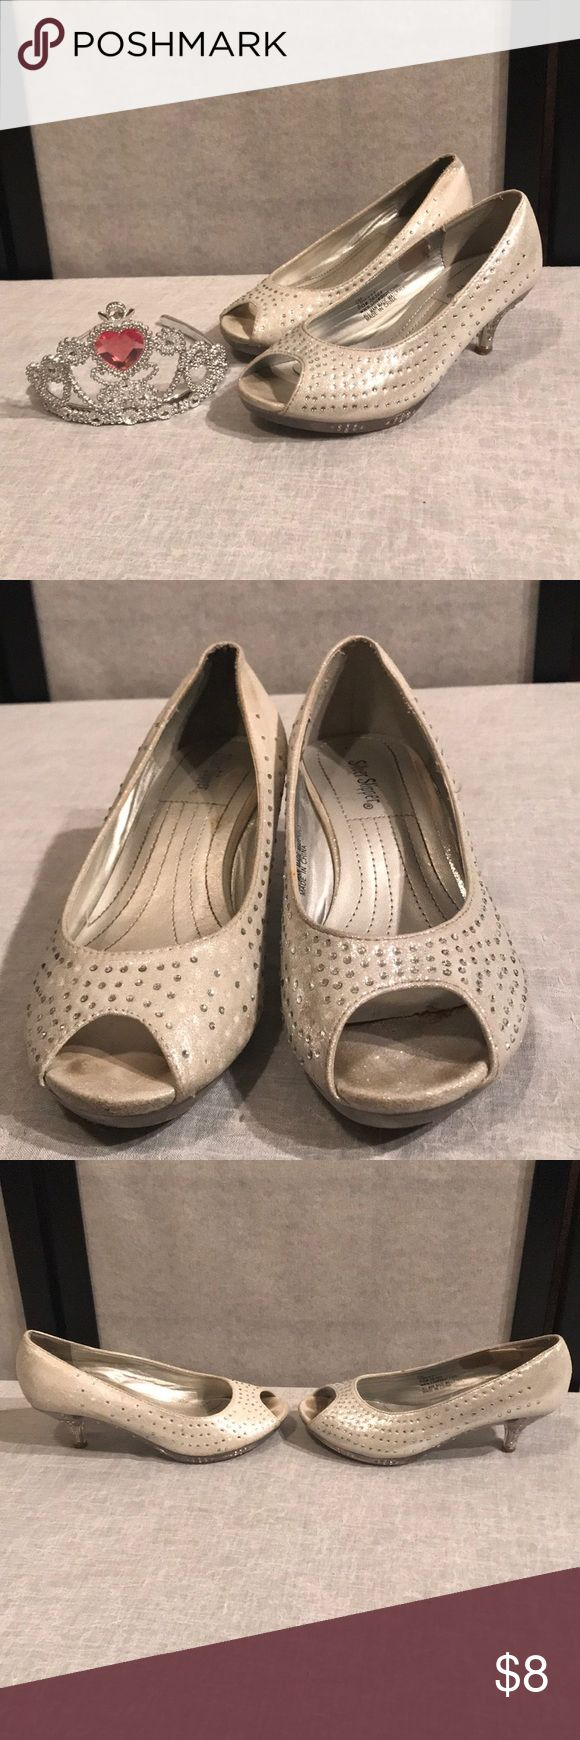 Silver Slipper shimmery silver clear bottom & heel Silver Slipper shimmery silver clear bottom & heel with rhinestone.. missing some stones around shoe, see pic GUC) Silver Slipper Shoes Slippers